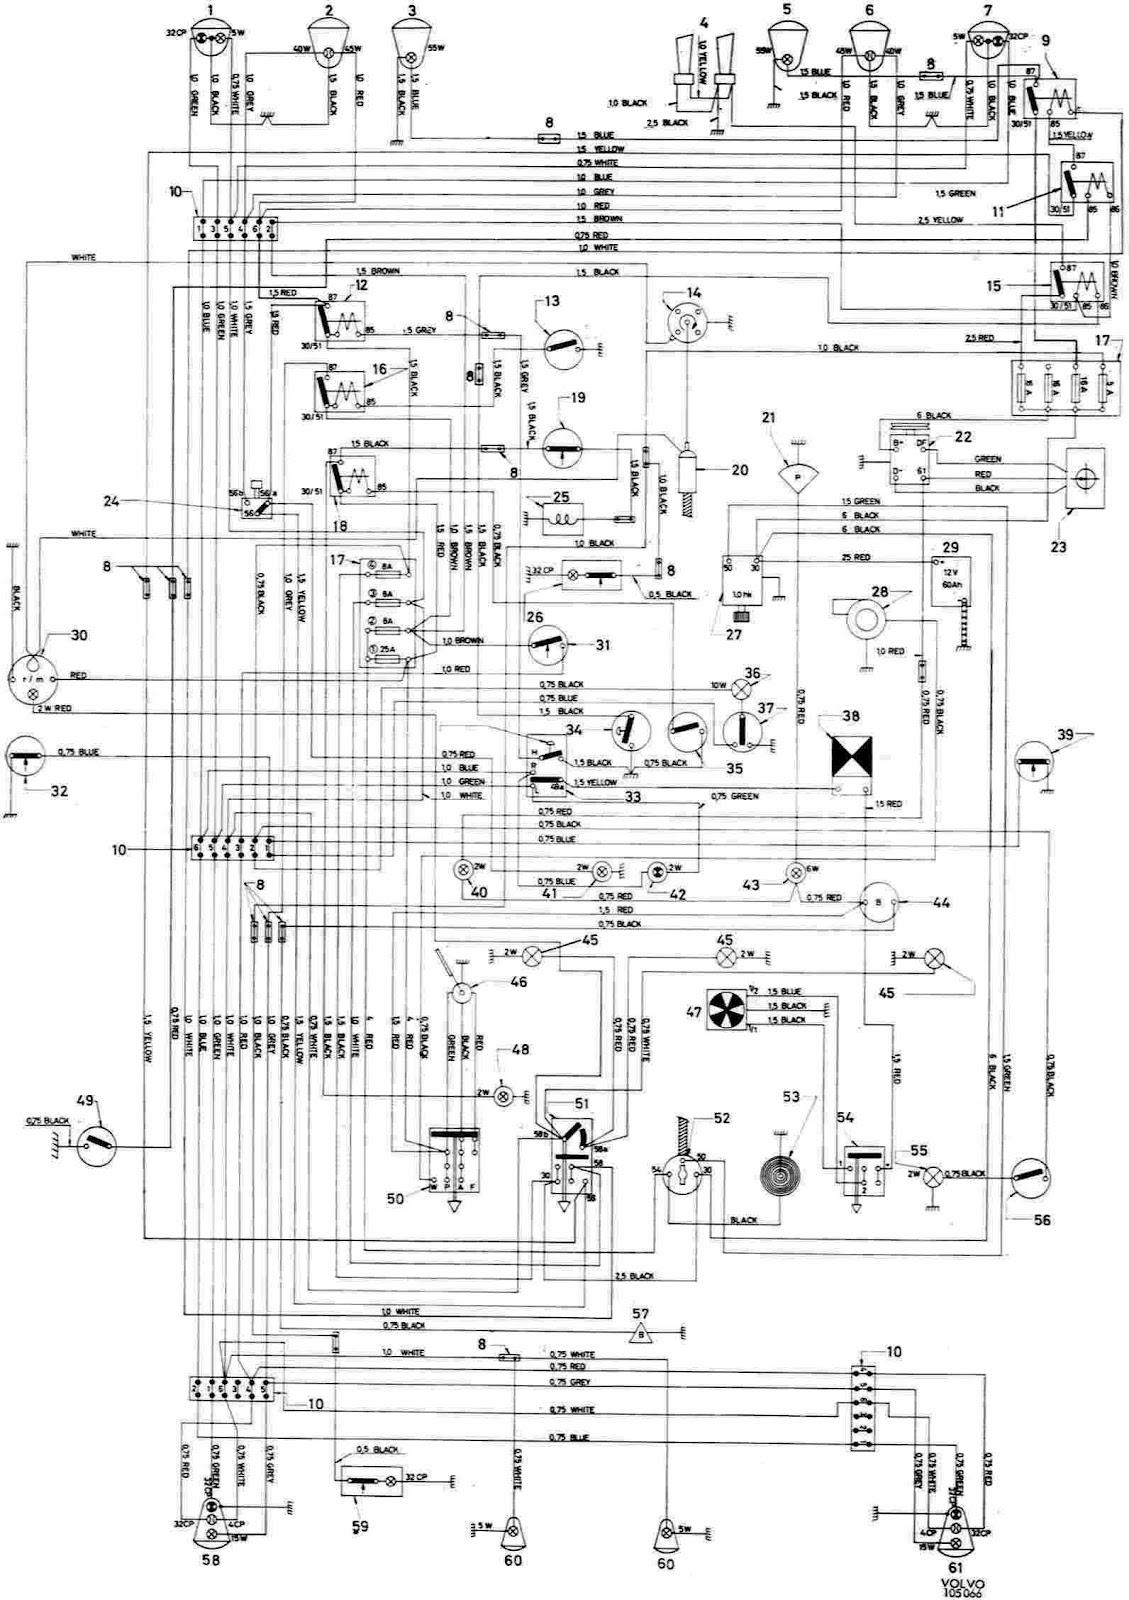 Volvo+123+GT+Complete+Wiring+Diagram hu 613 wiring diagram boat wiring diagram \u2022 wiring diagrams j 2004 Volvo XC90 Interior at gsmx.co